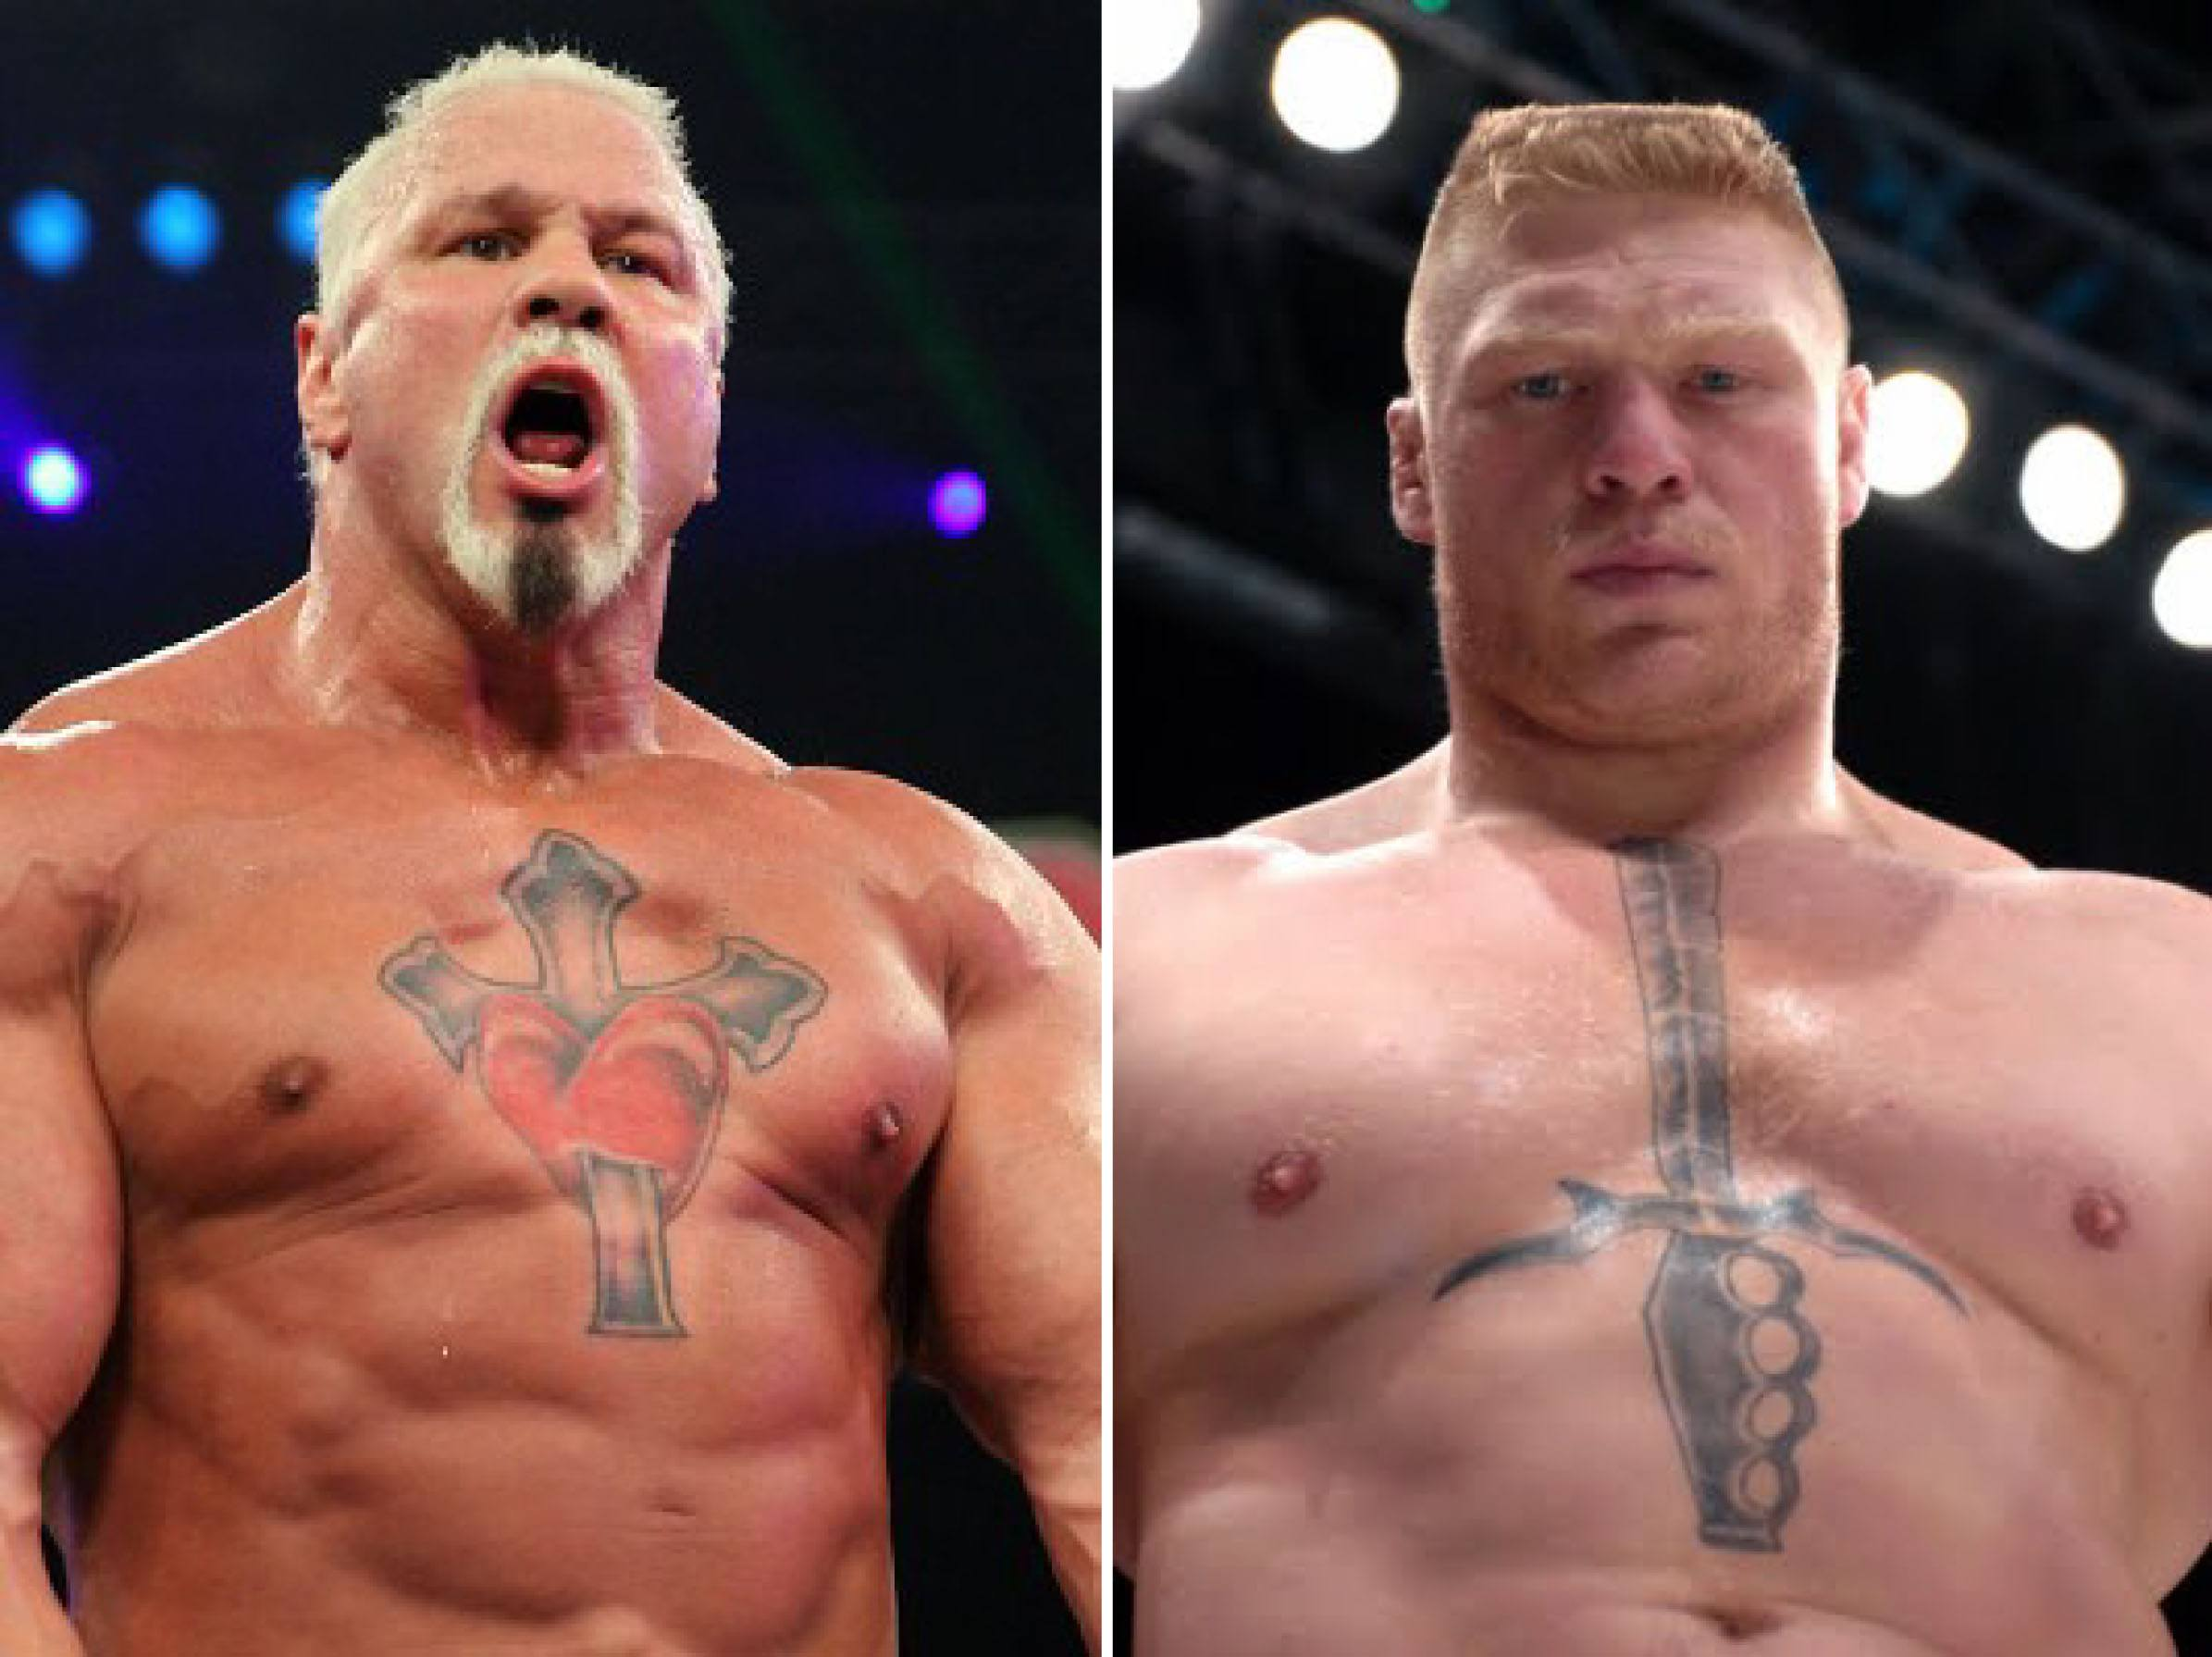 lesnar and steiner argue over whose chest tattoo is uglier